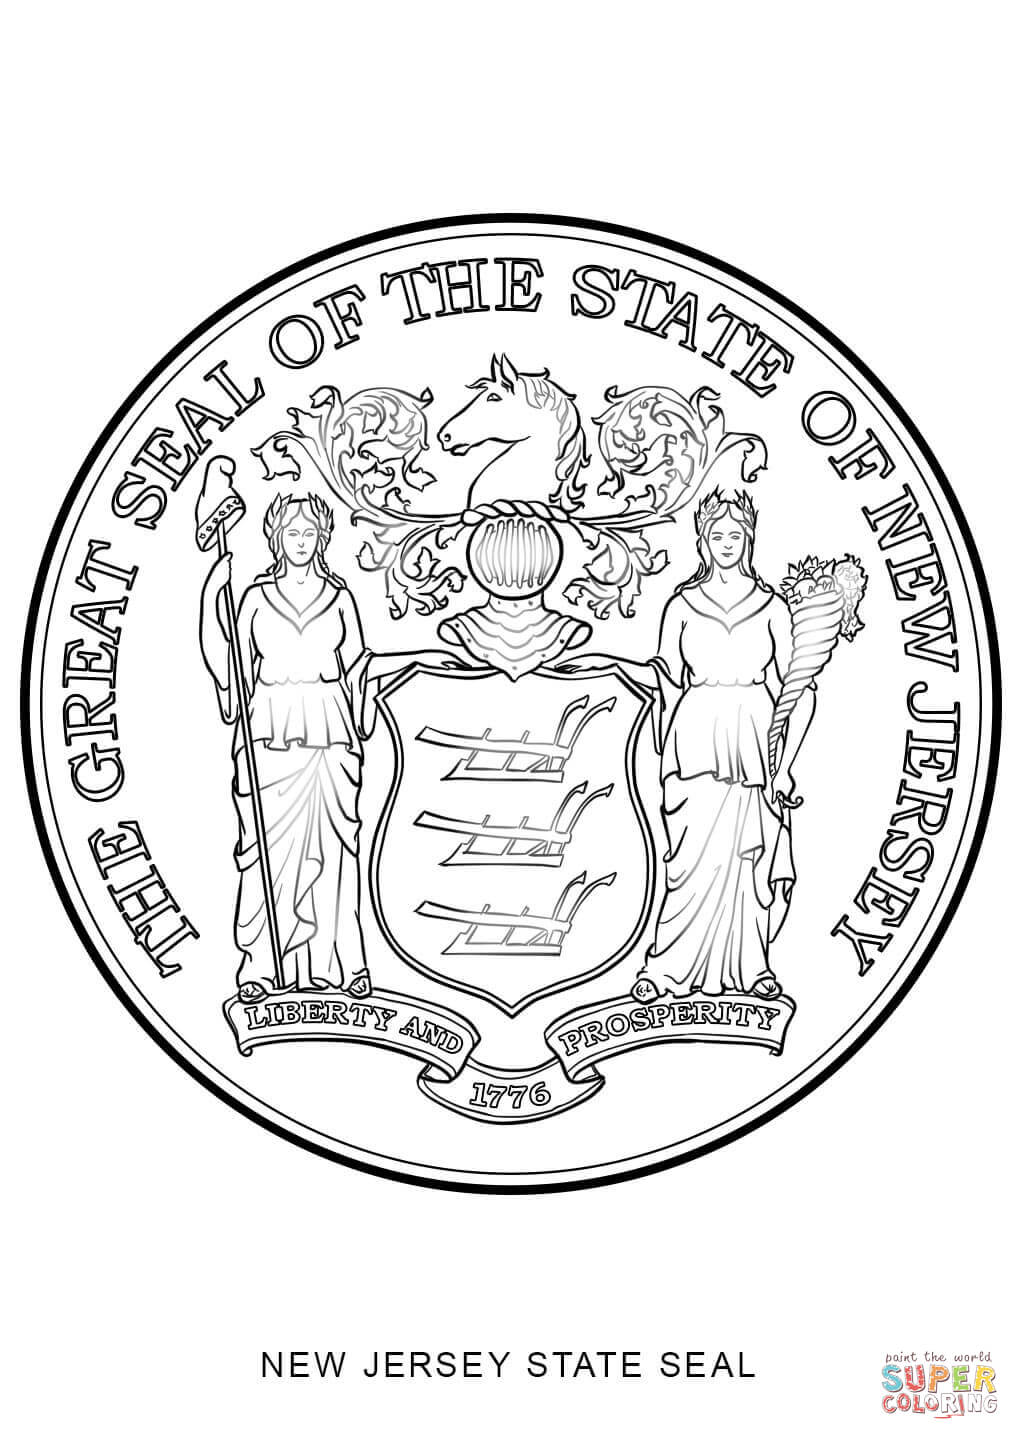 New jersey state seal coloring page